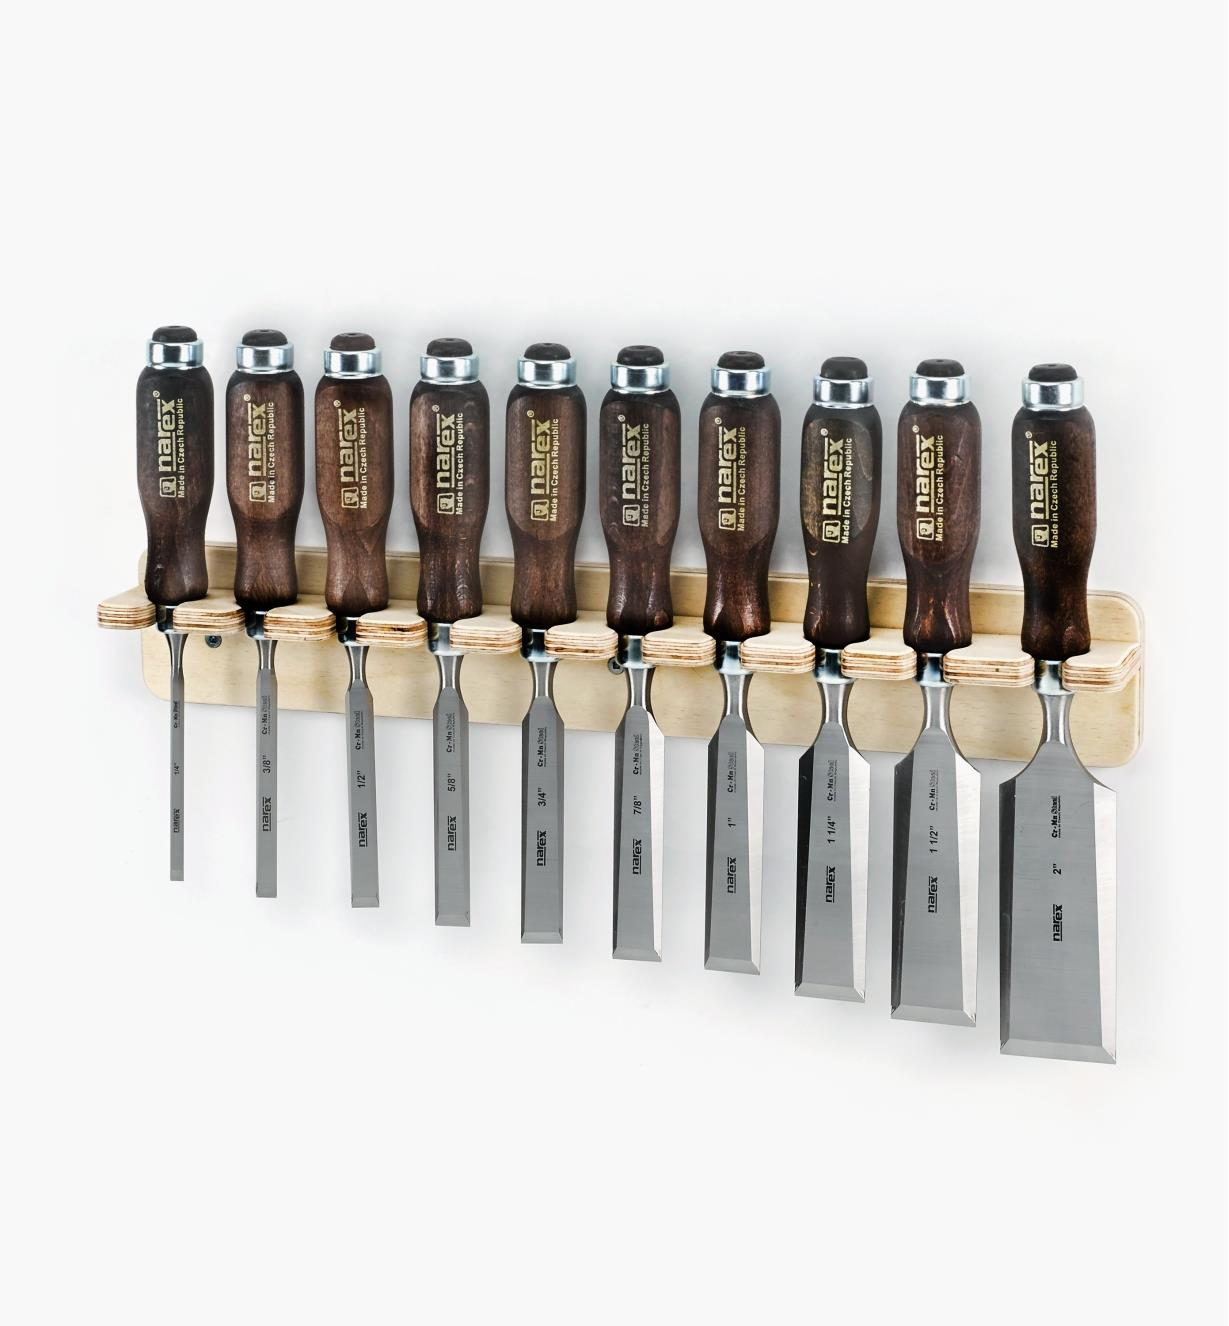 10S0980 - Set of 10 Narex Bevel-Edge Chisels & Wall Rack